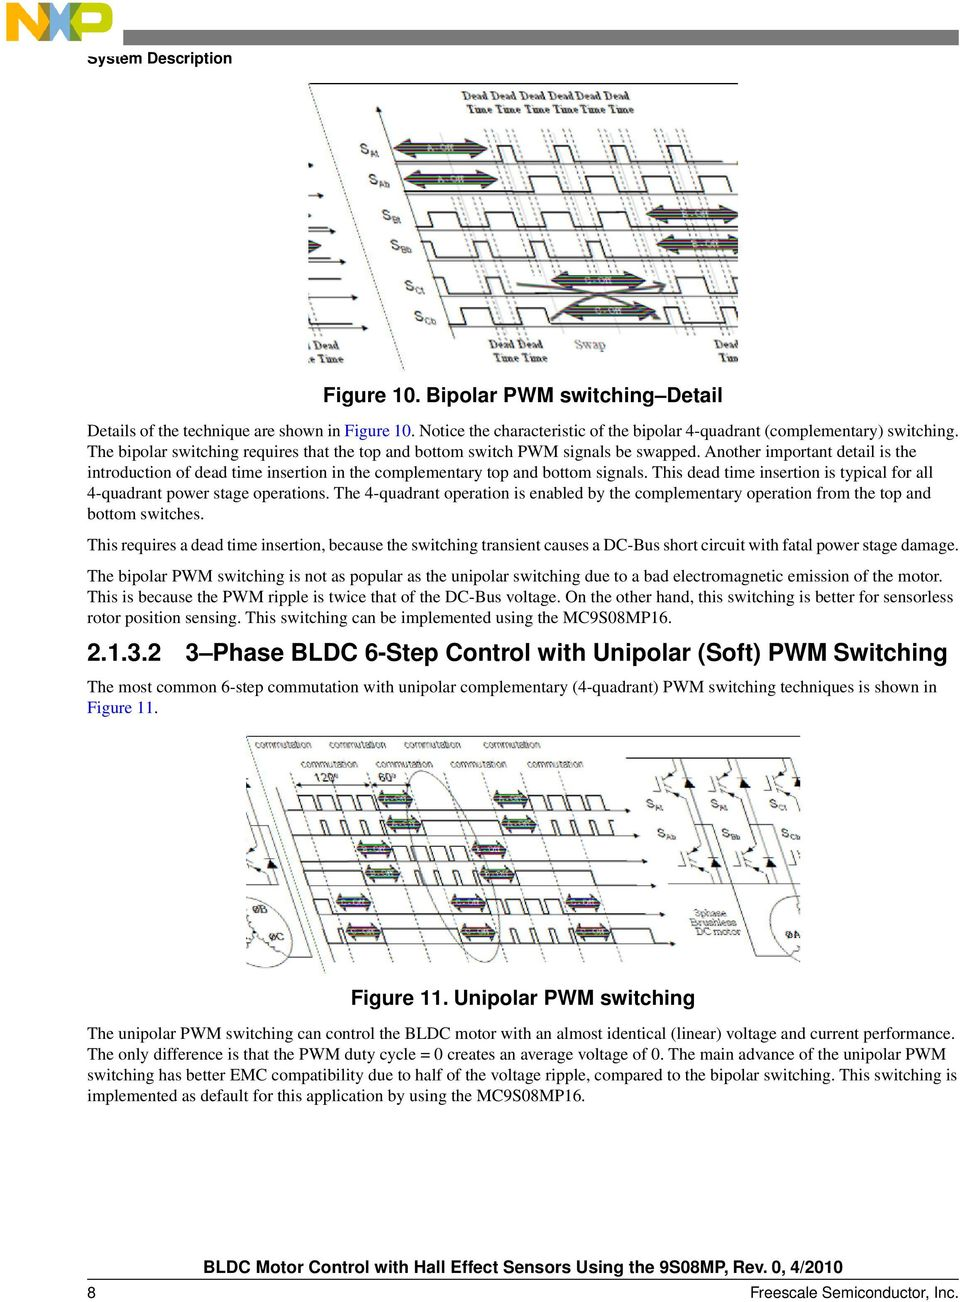 Bldc Motor Control With Hall Effect Sensors Using The 9s08mp Pdf Another Important Aspect Of Circuits And Power This Dead Time Insertion Is Typical For All 4 Quadrant Stage Operations 9 22 9s8mp6 Controller